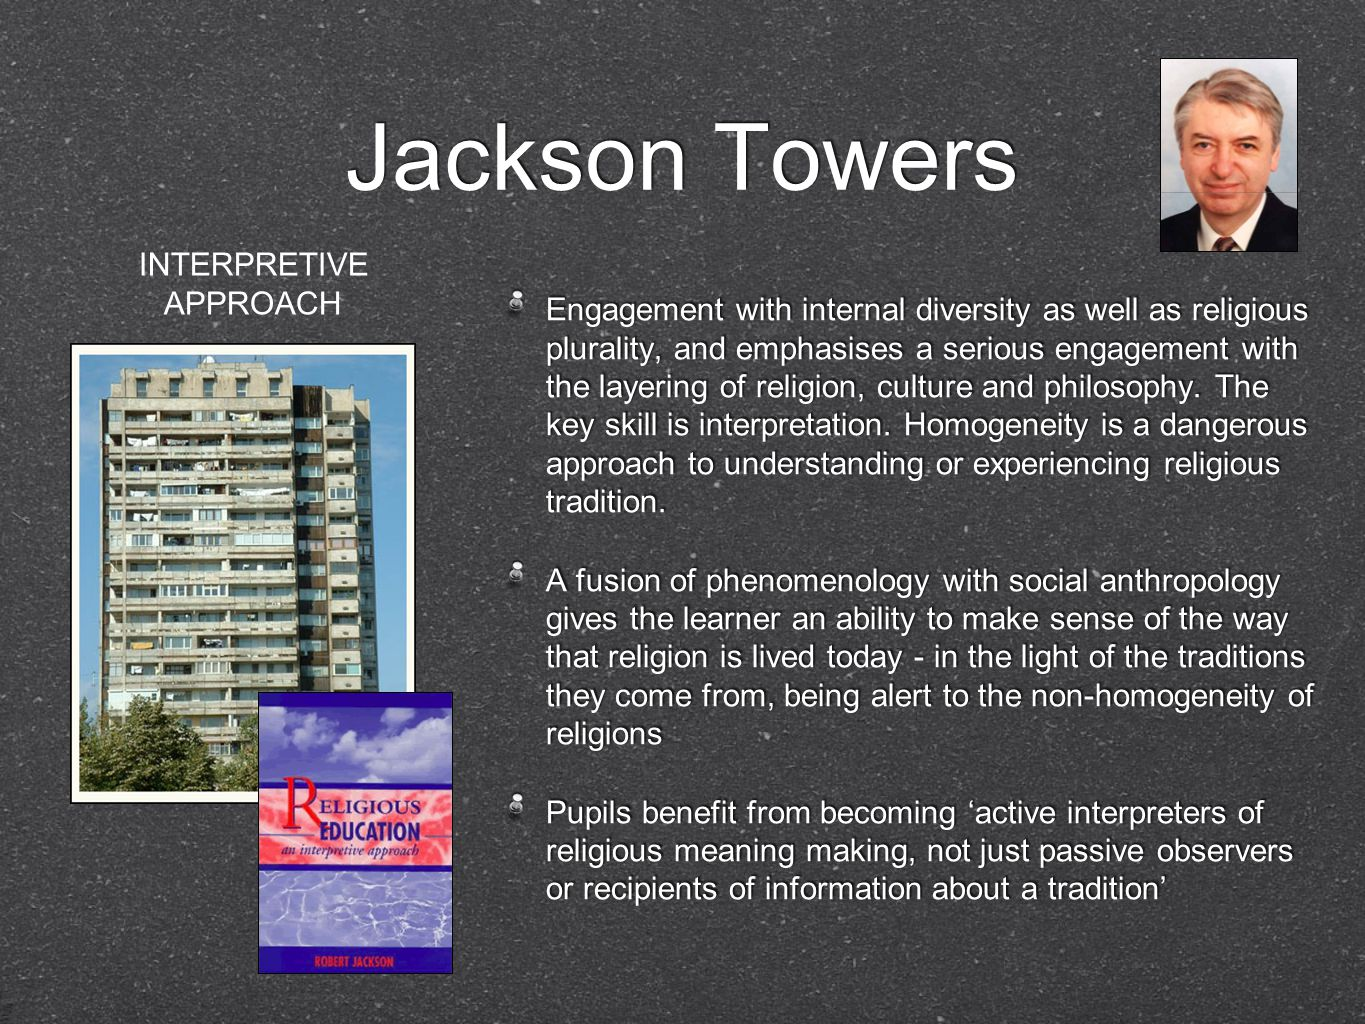 Jackson Towers Engagement with internal diversity as well as religious plurality, and emphasises a serious engagement with the layering of religion, culture and philosophy.